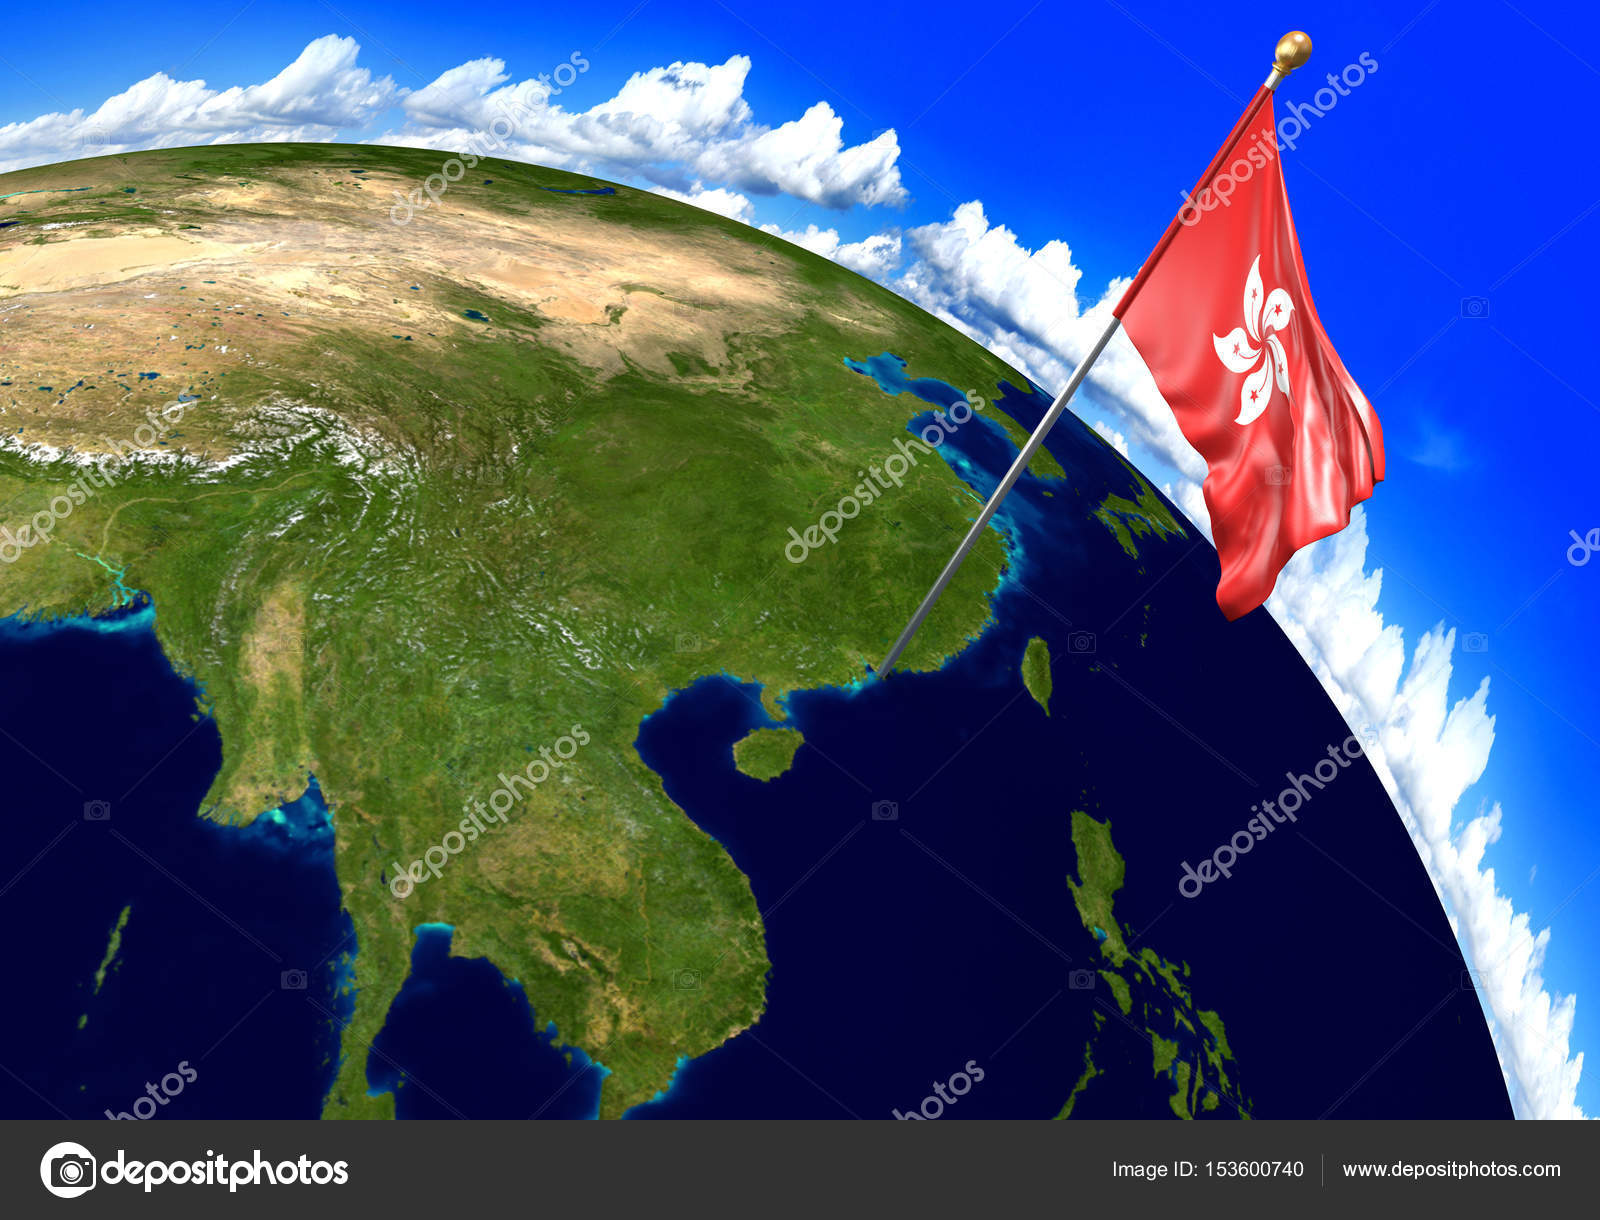 Hong kong national flag marking the country location on world map 3d render of the national flag of hong kong over the geographic location of the country on a world map parts of this image furnished by nasa gumiabroncs Images